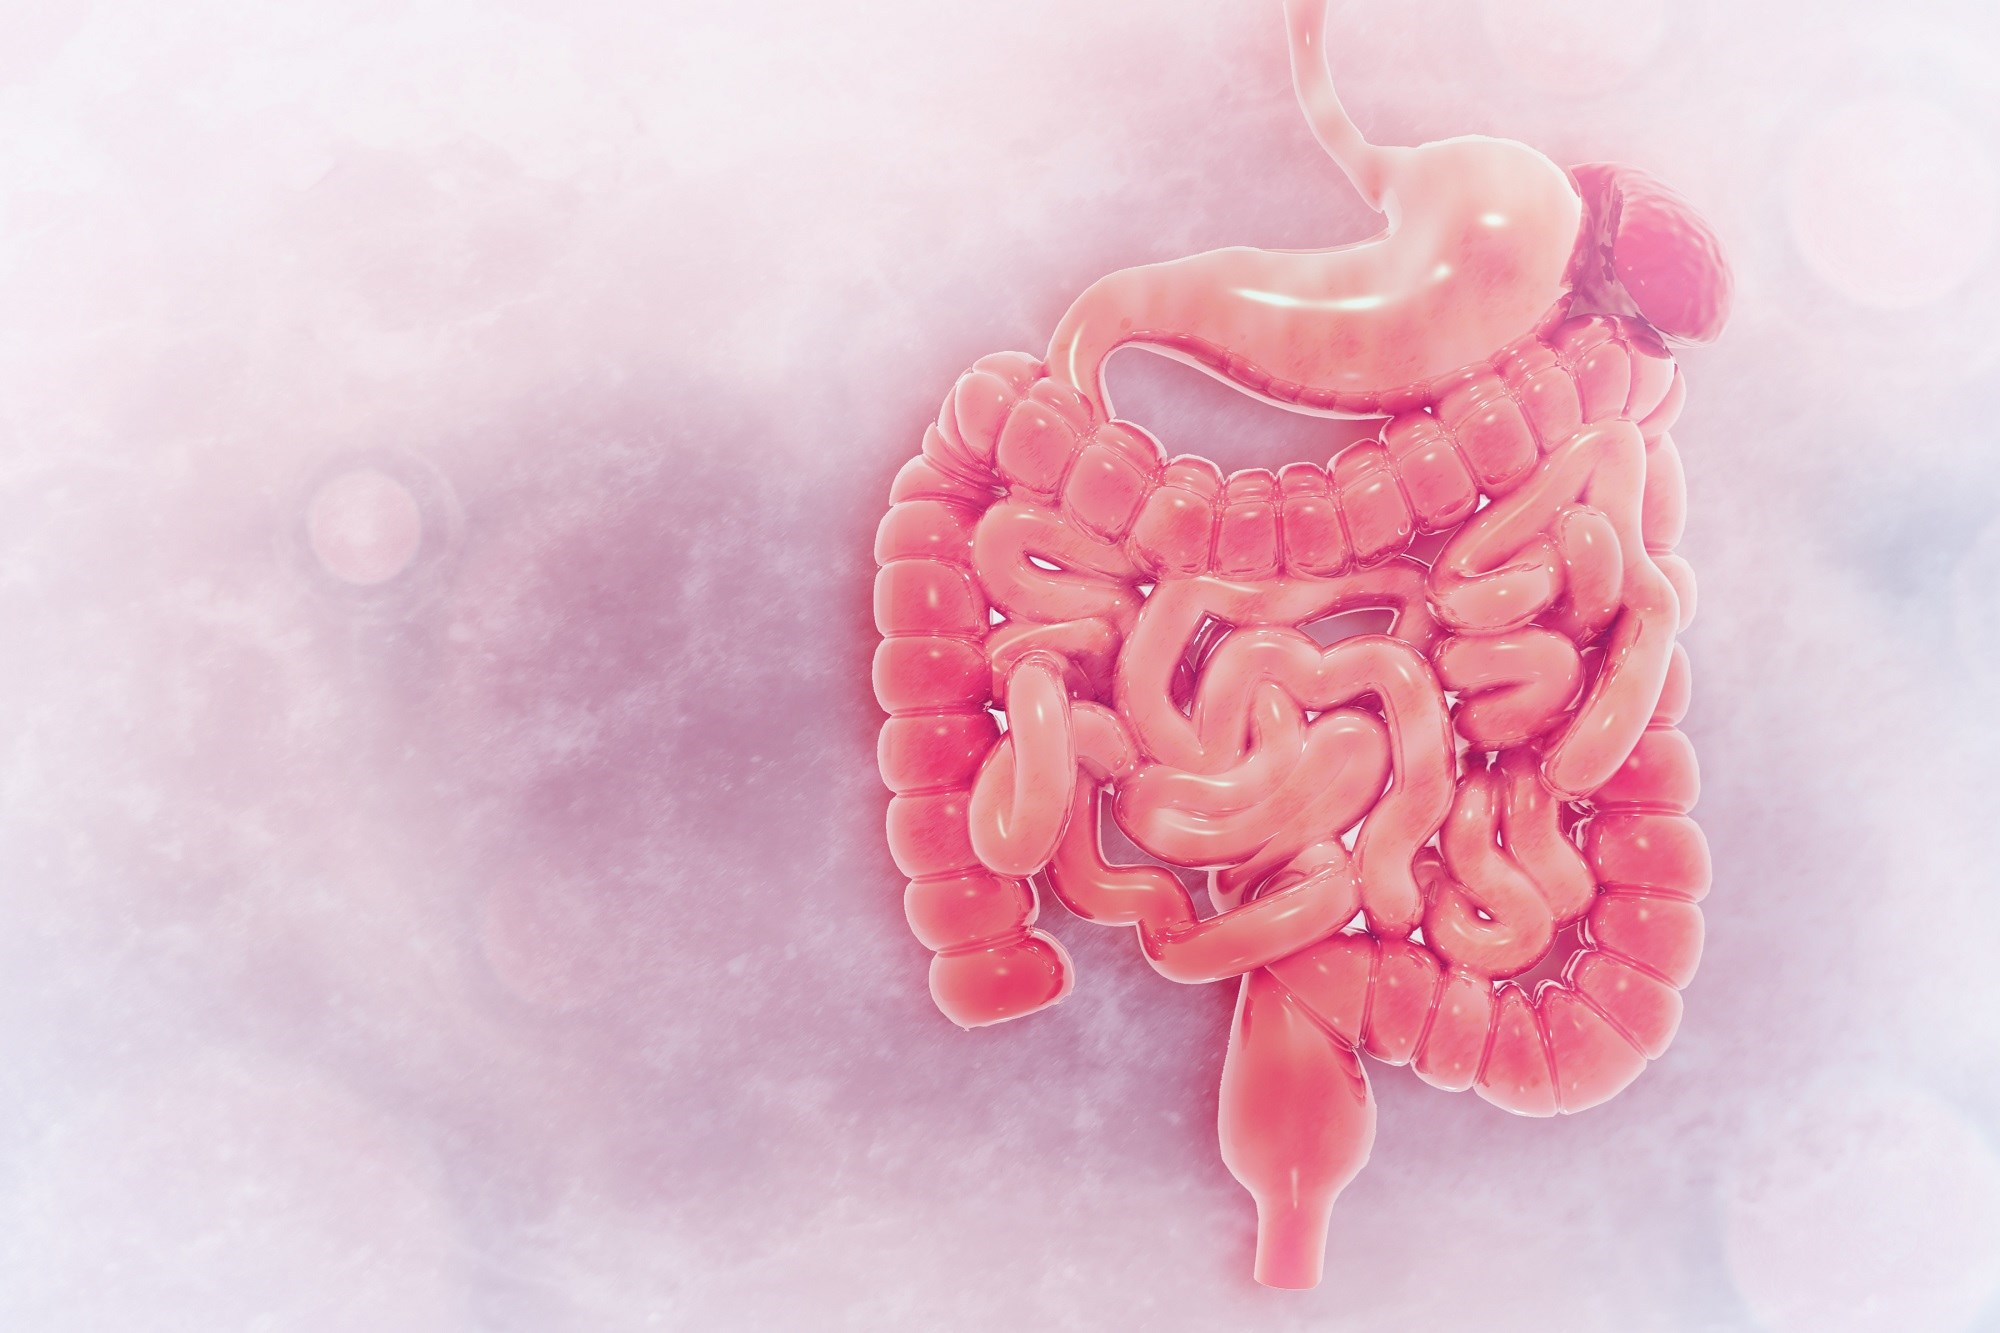 Patients who have the entire or left side of the colon removed show increased risk for developing type 2 diabetes in the 18 years following surgery.